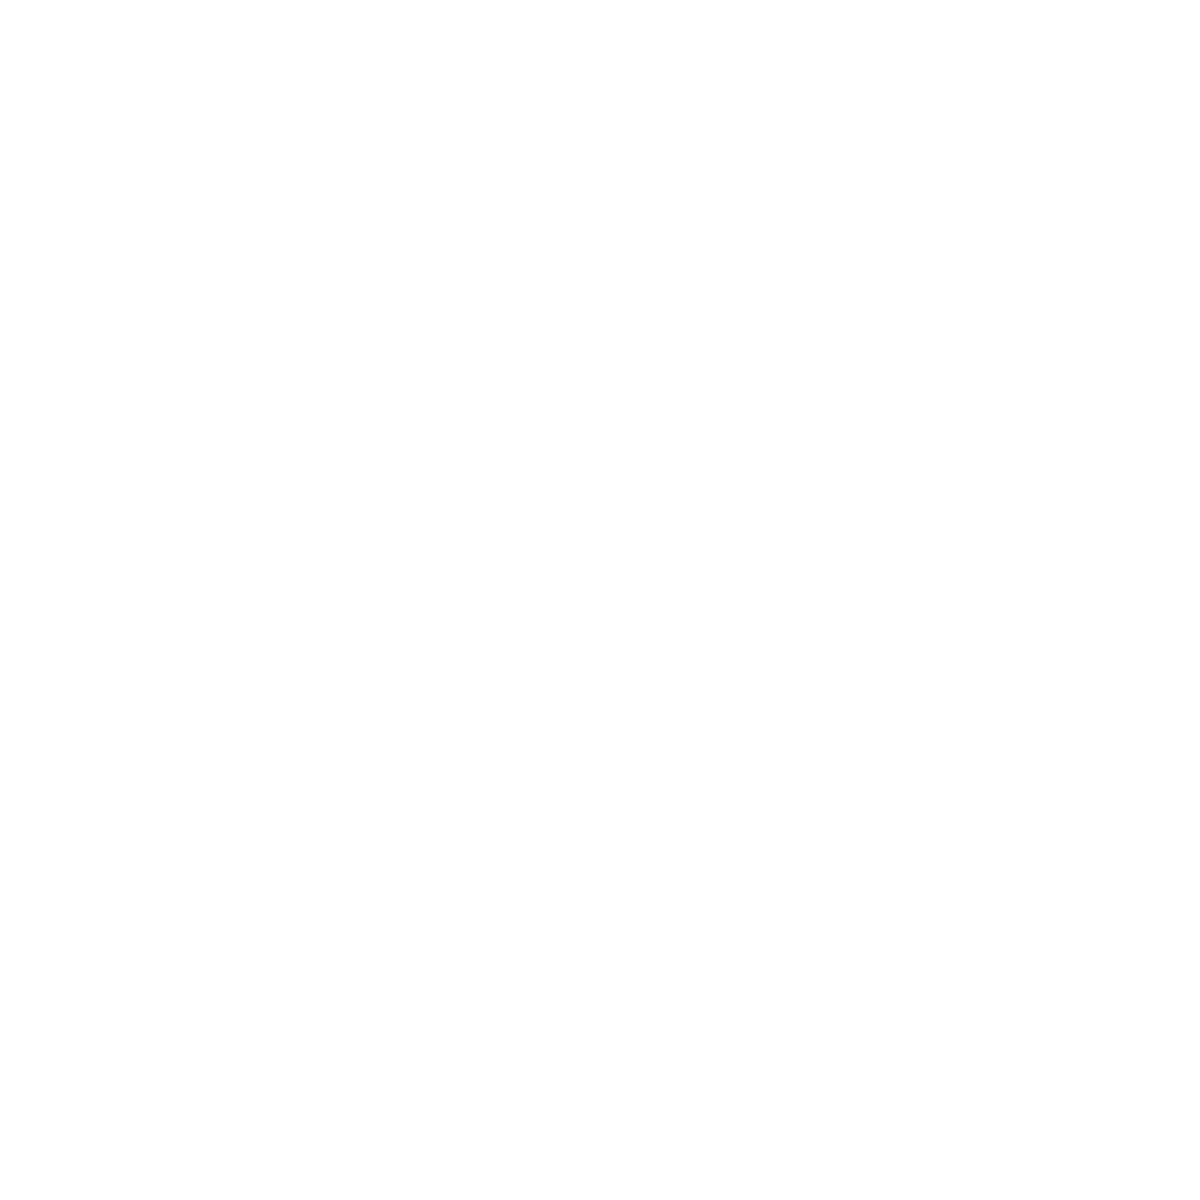 Craft HR Solutions